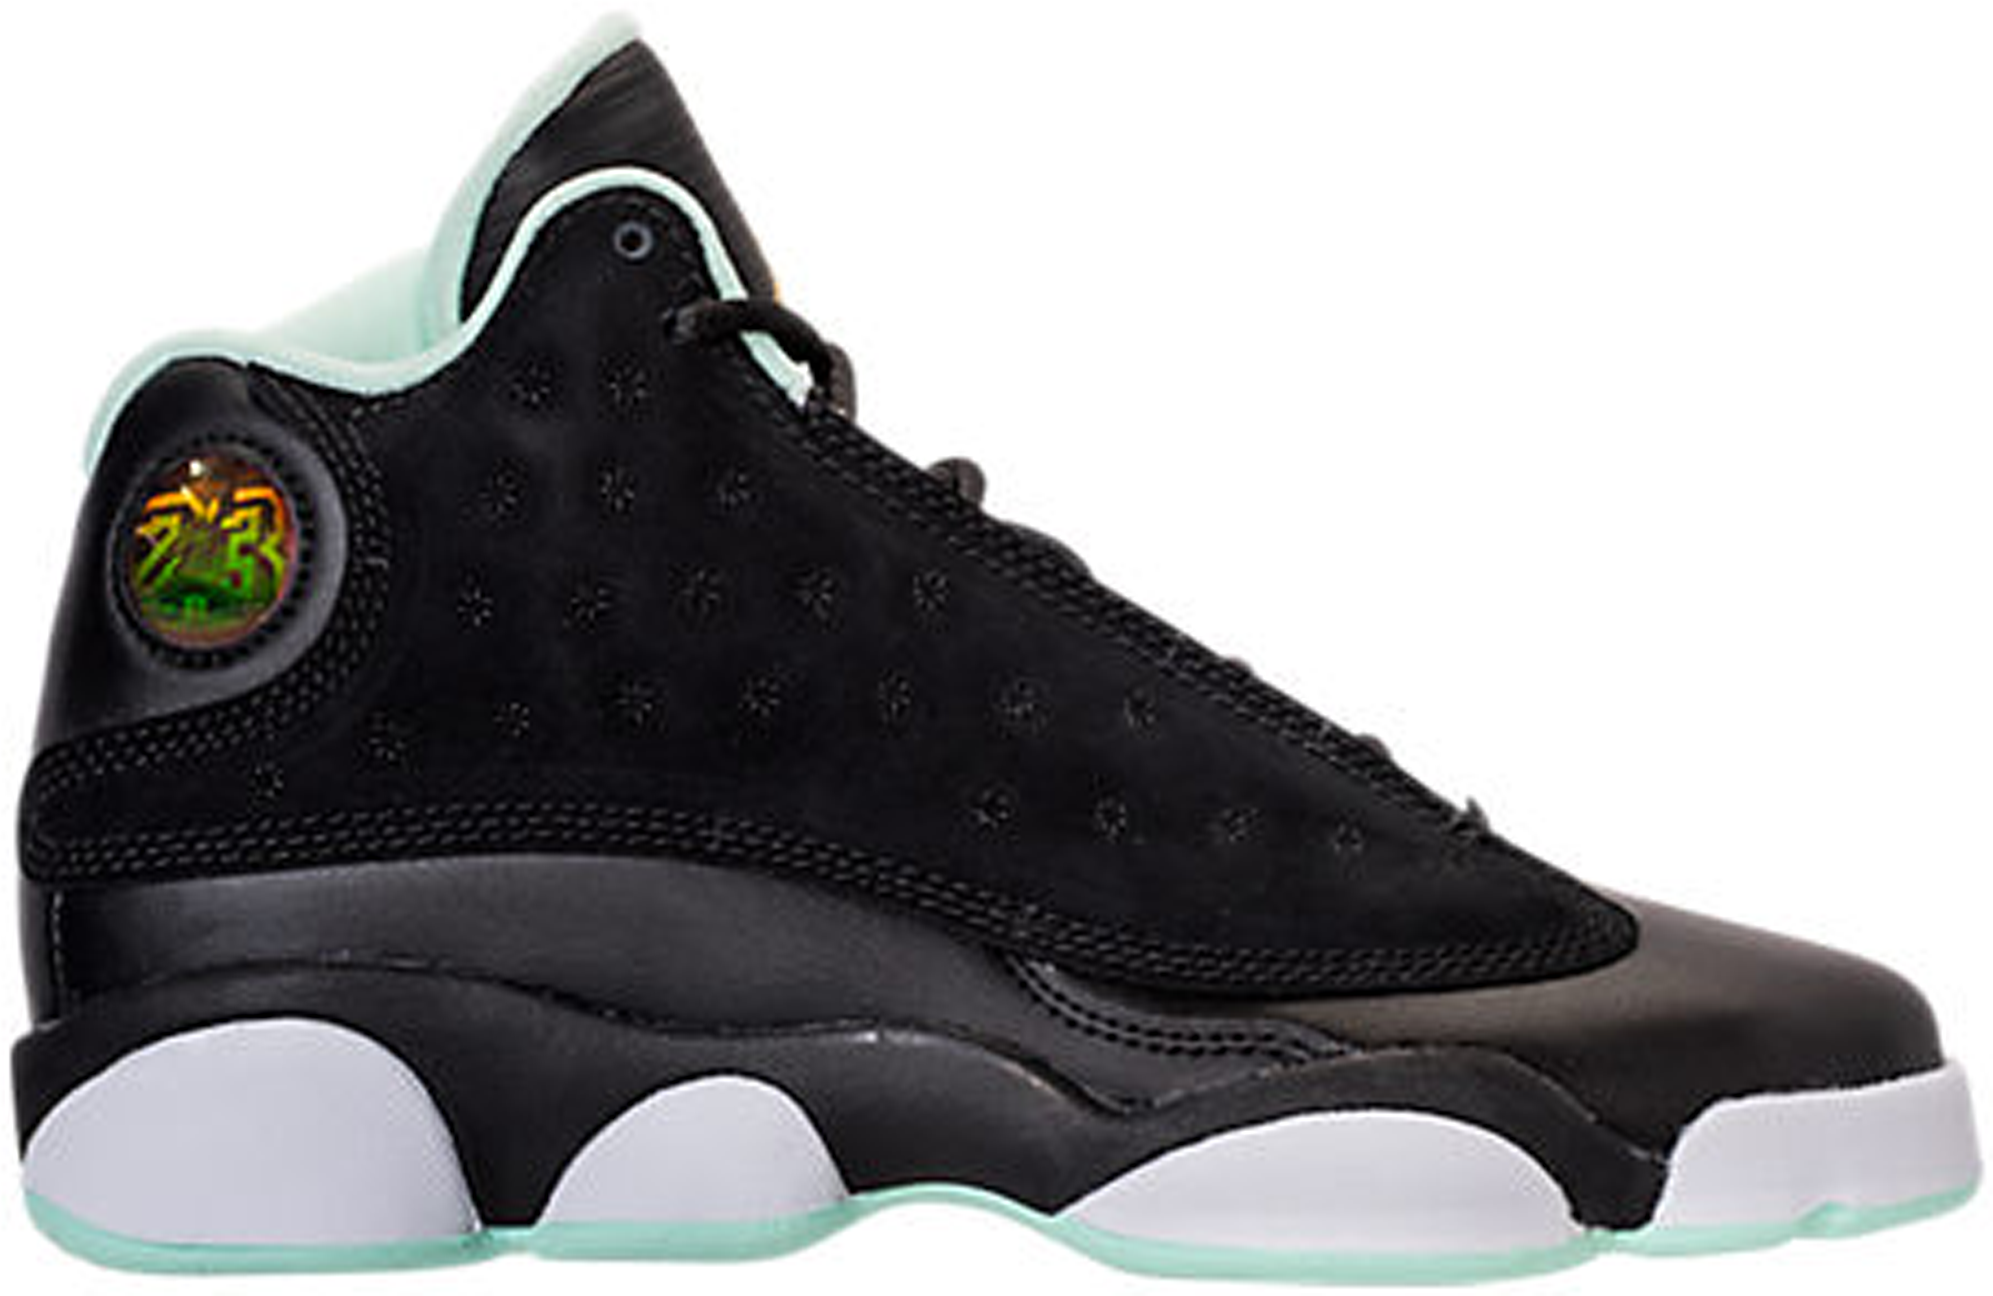 big sale 8a7a7 6d3dc HypeAnalyzer · Jordan 13 Retro Black Mint Foam (GS)